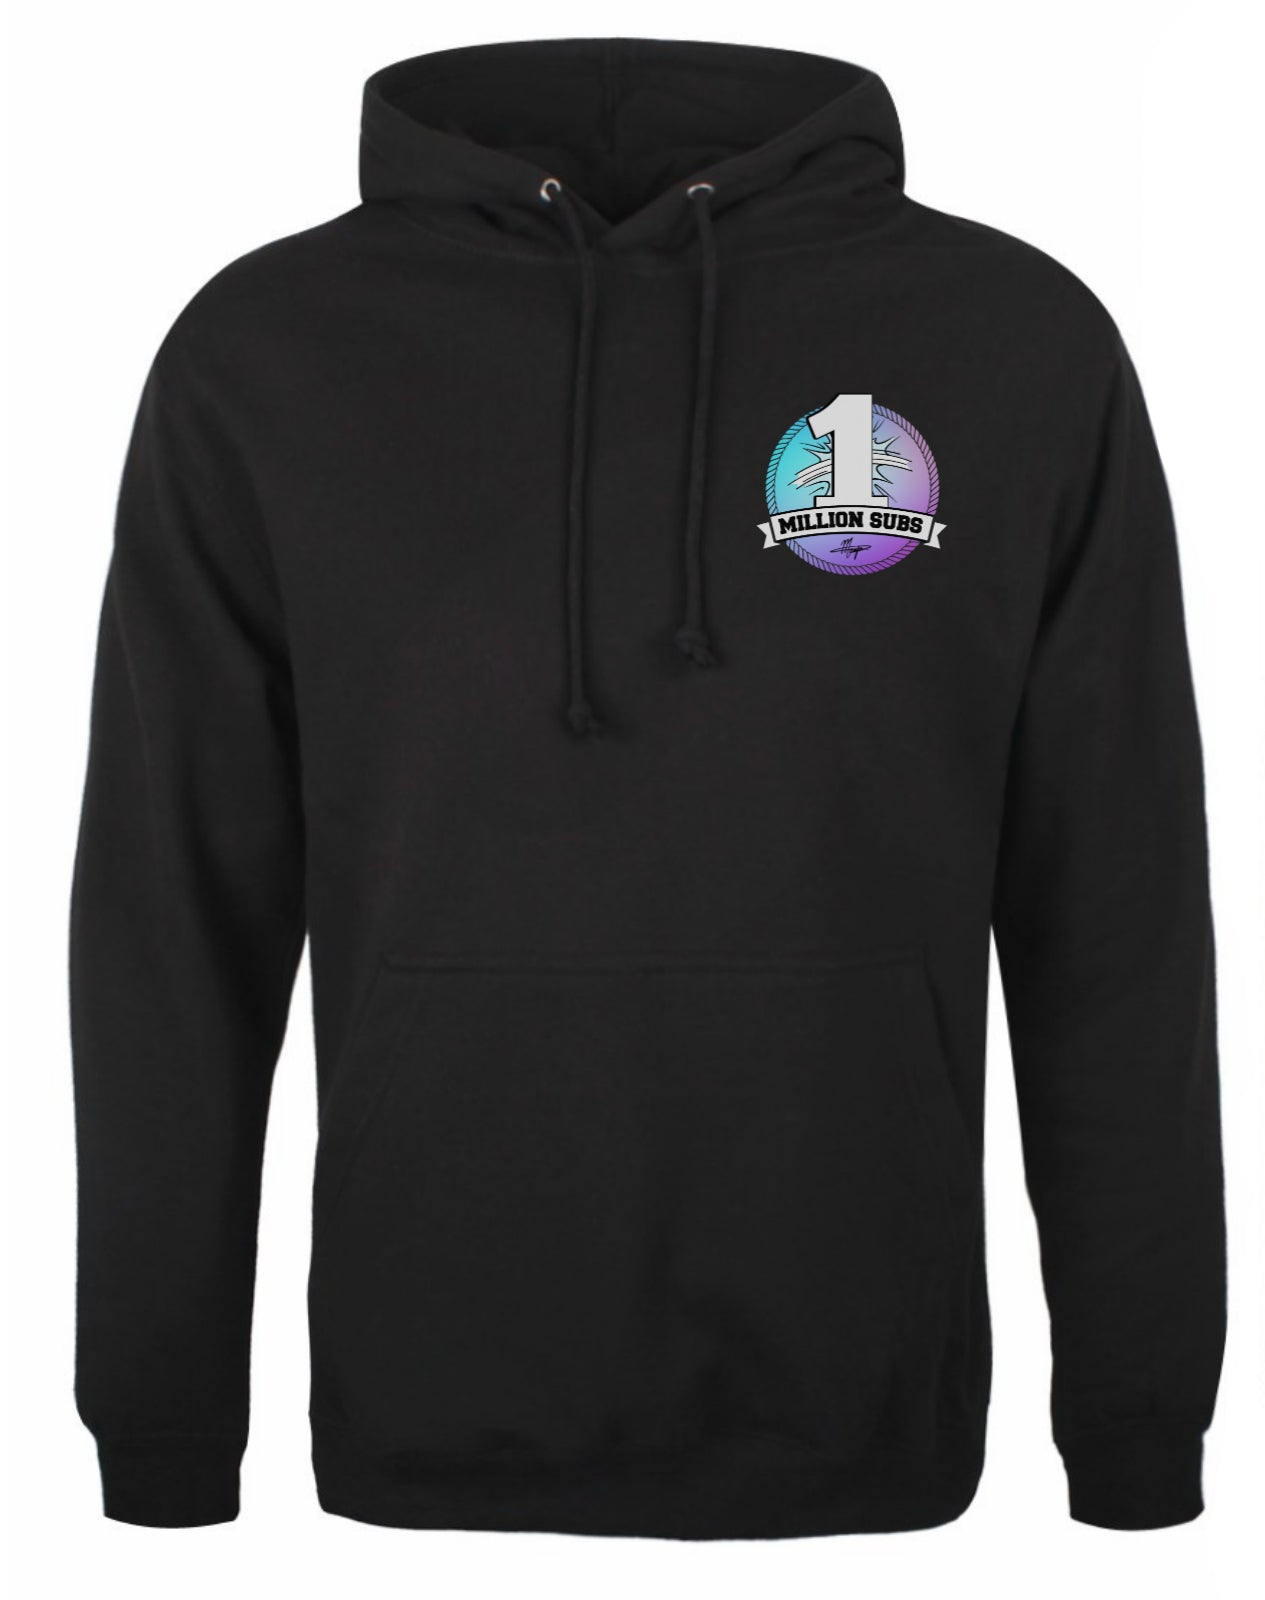 1 Million Subs Sweatshirt